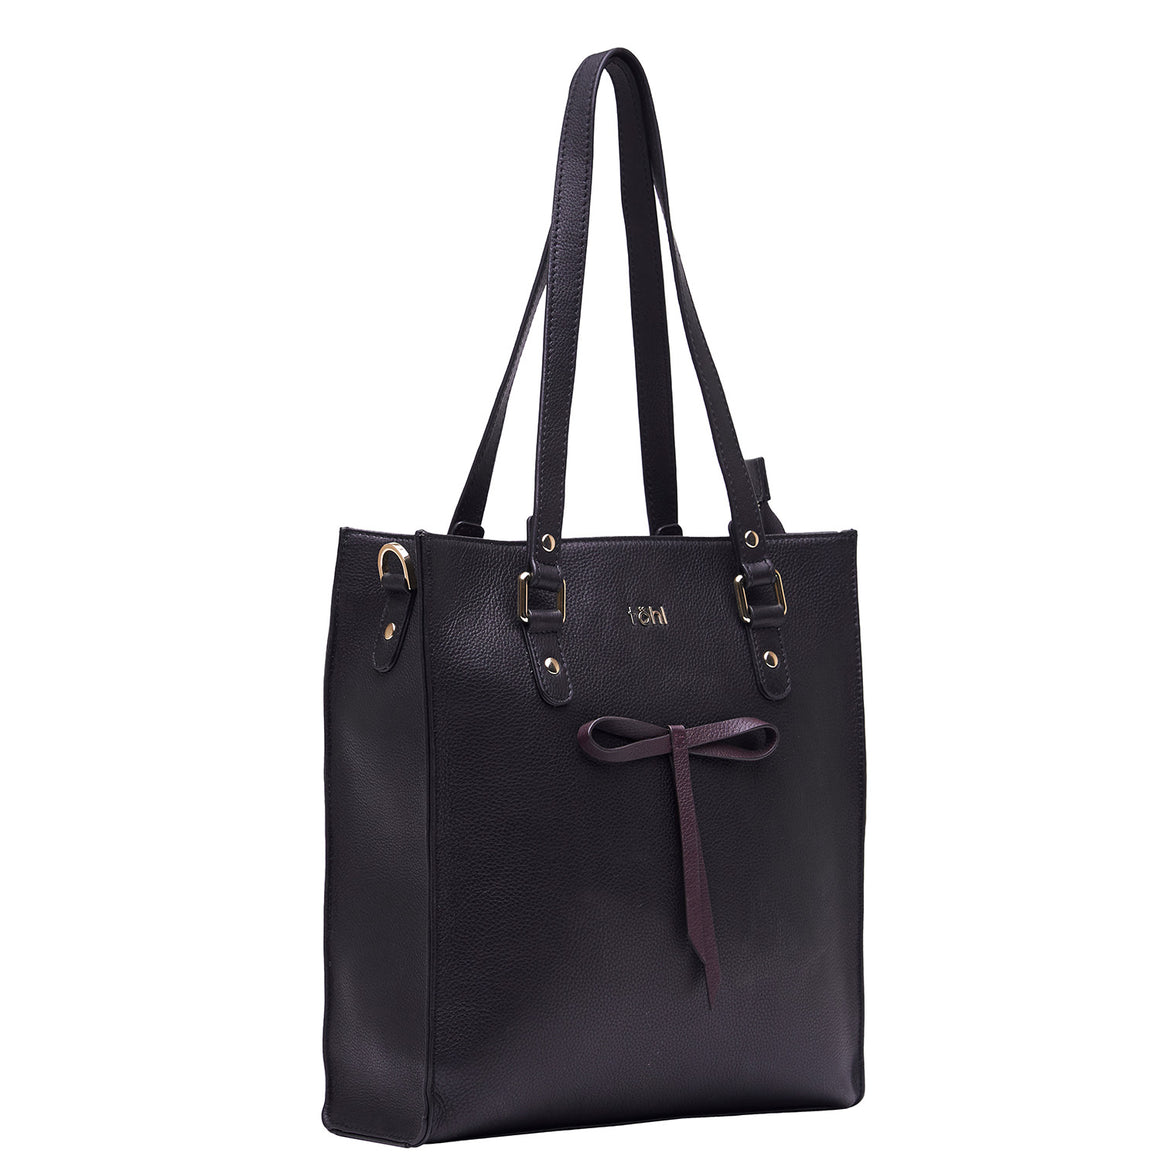 TT 0012 - TOHL DENNIS WOMEN'S TOTE BAG - BLACK